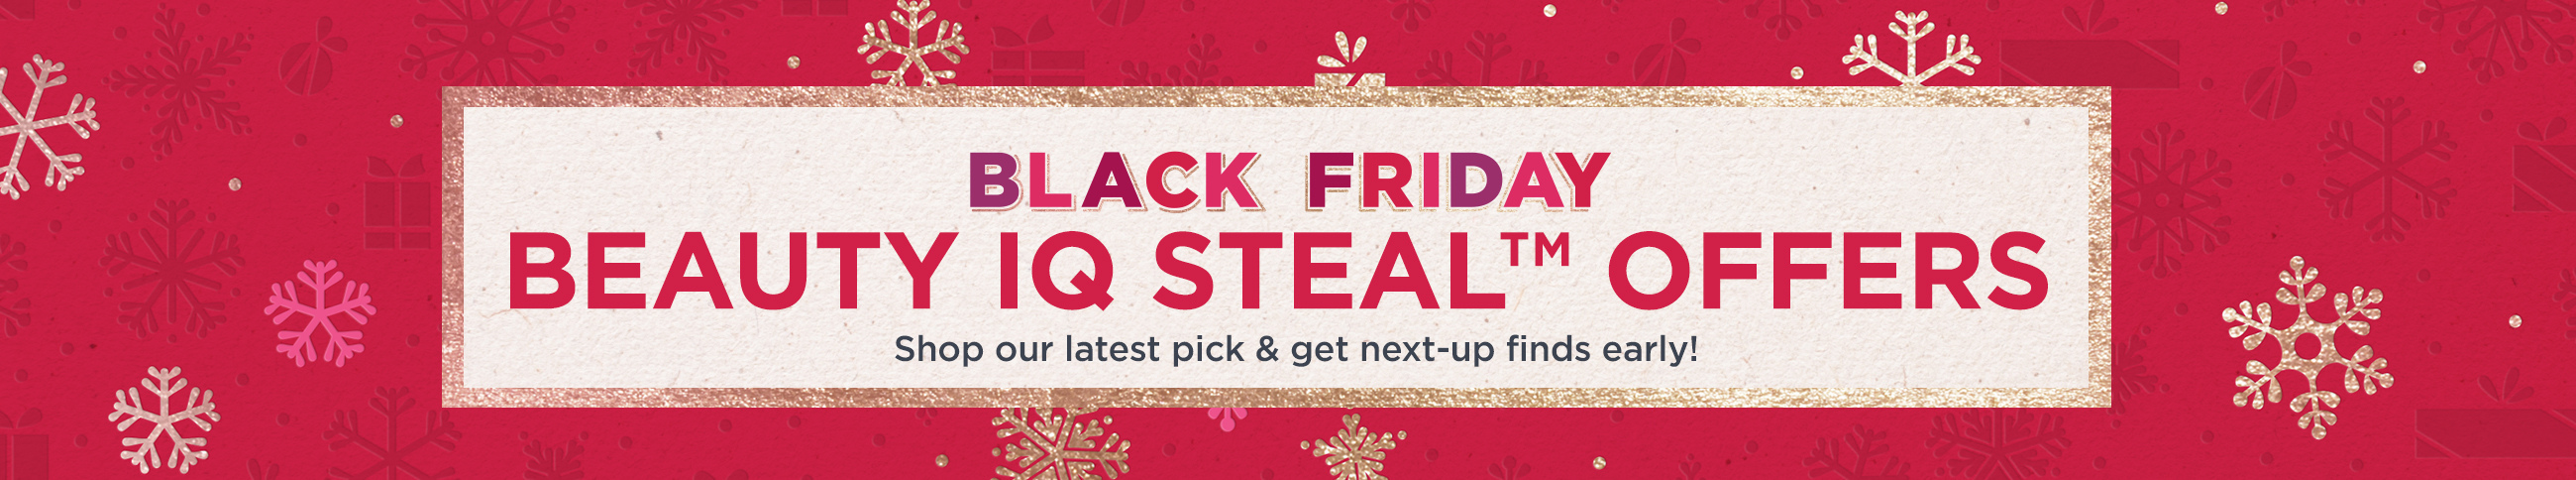 Black Friday Beauty iQ Steal™ Offers  Shop our latest pick & get next-up finds early!